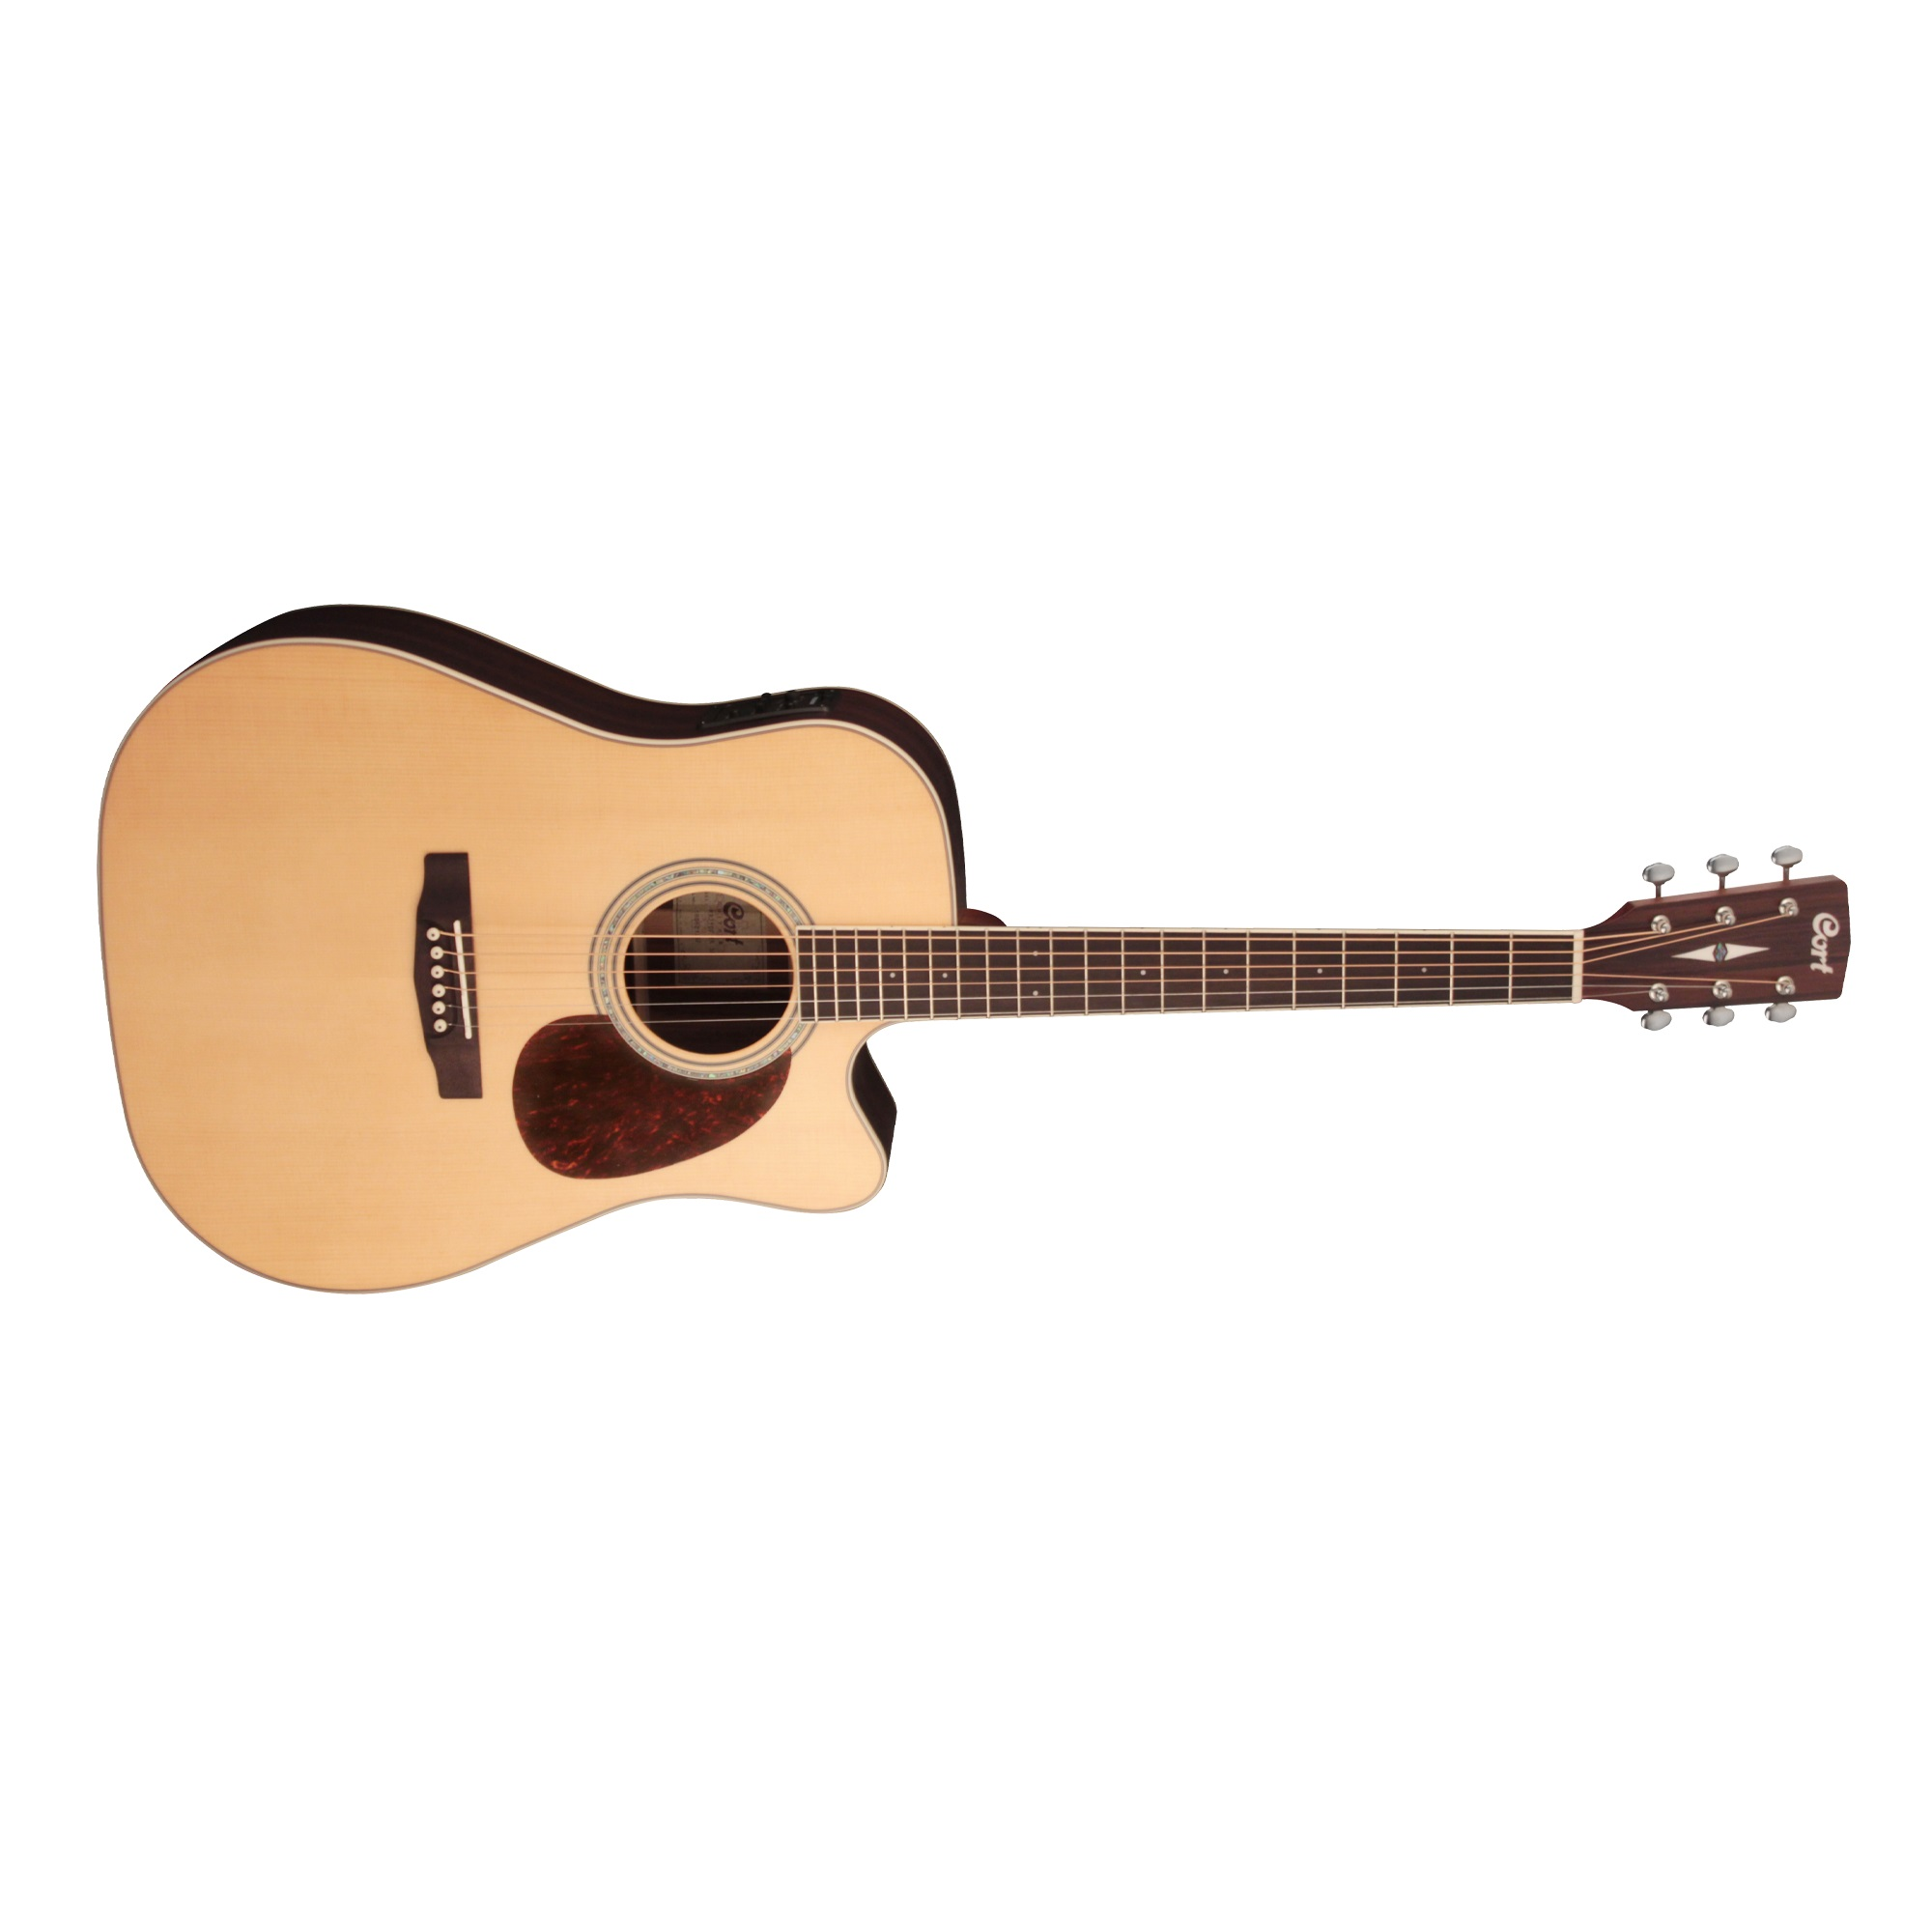 Cort MR720F Electro-Acoustic Guitar - Natural Satin